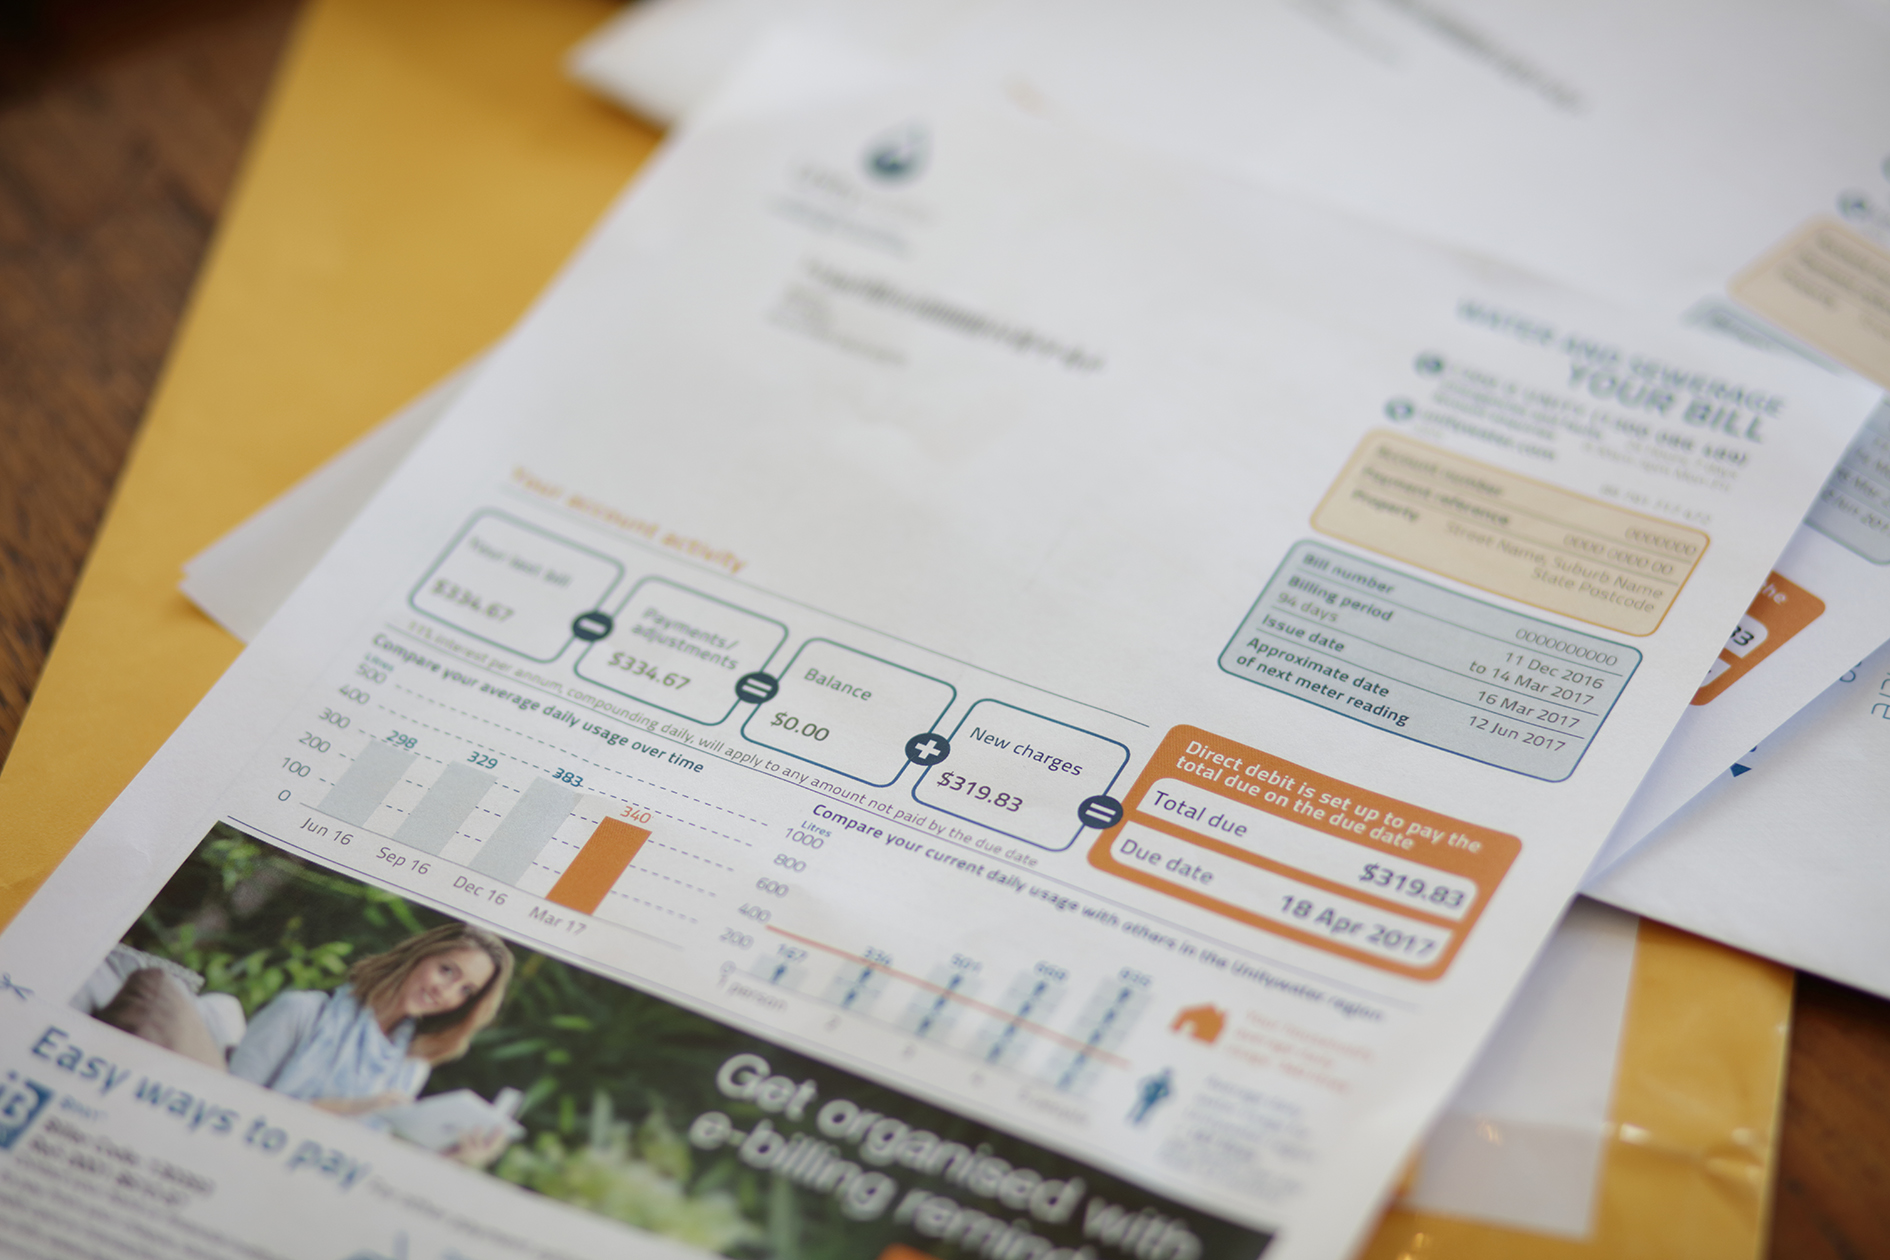 Unitywater bill lying on desk in pile of papers